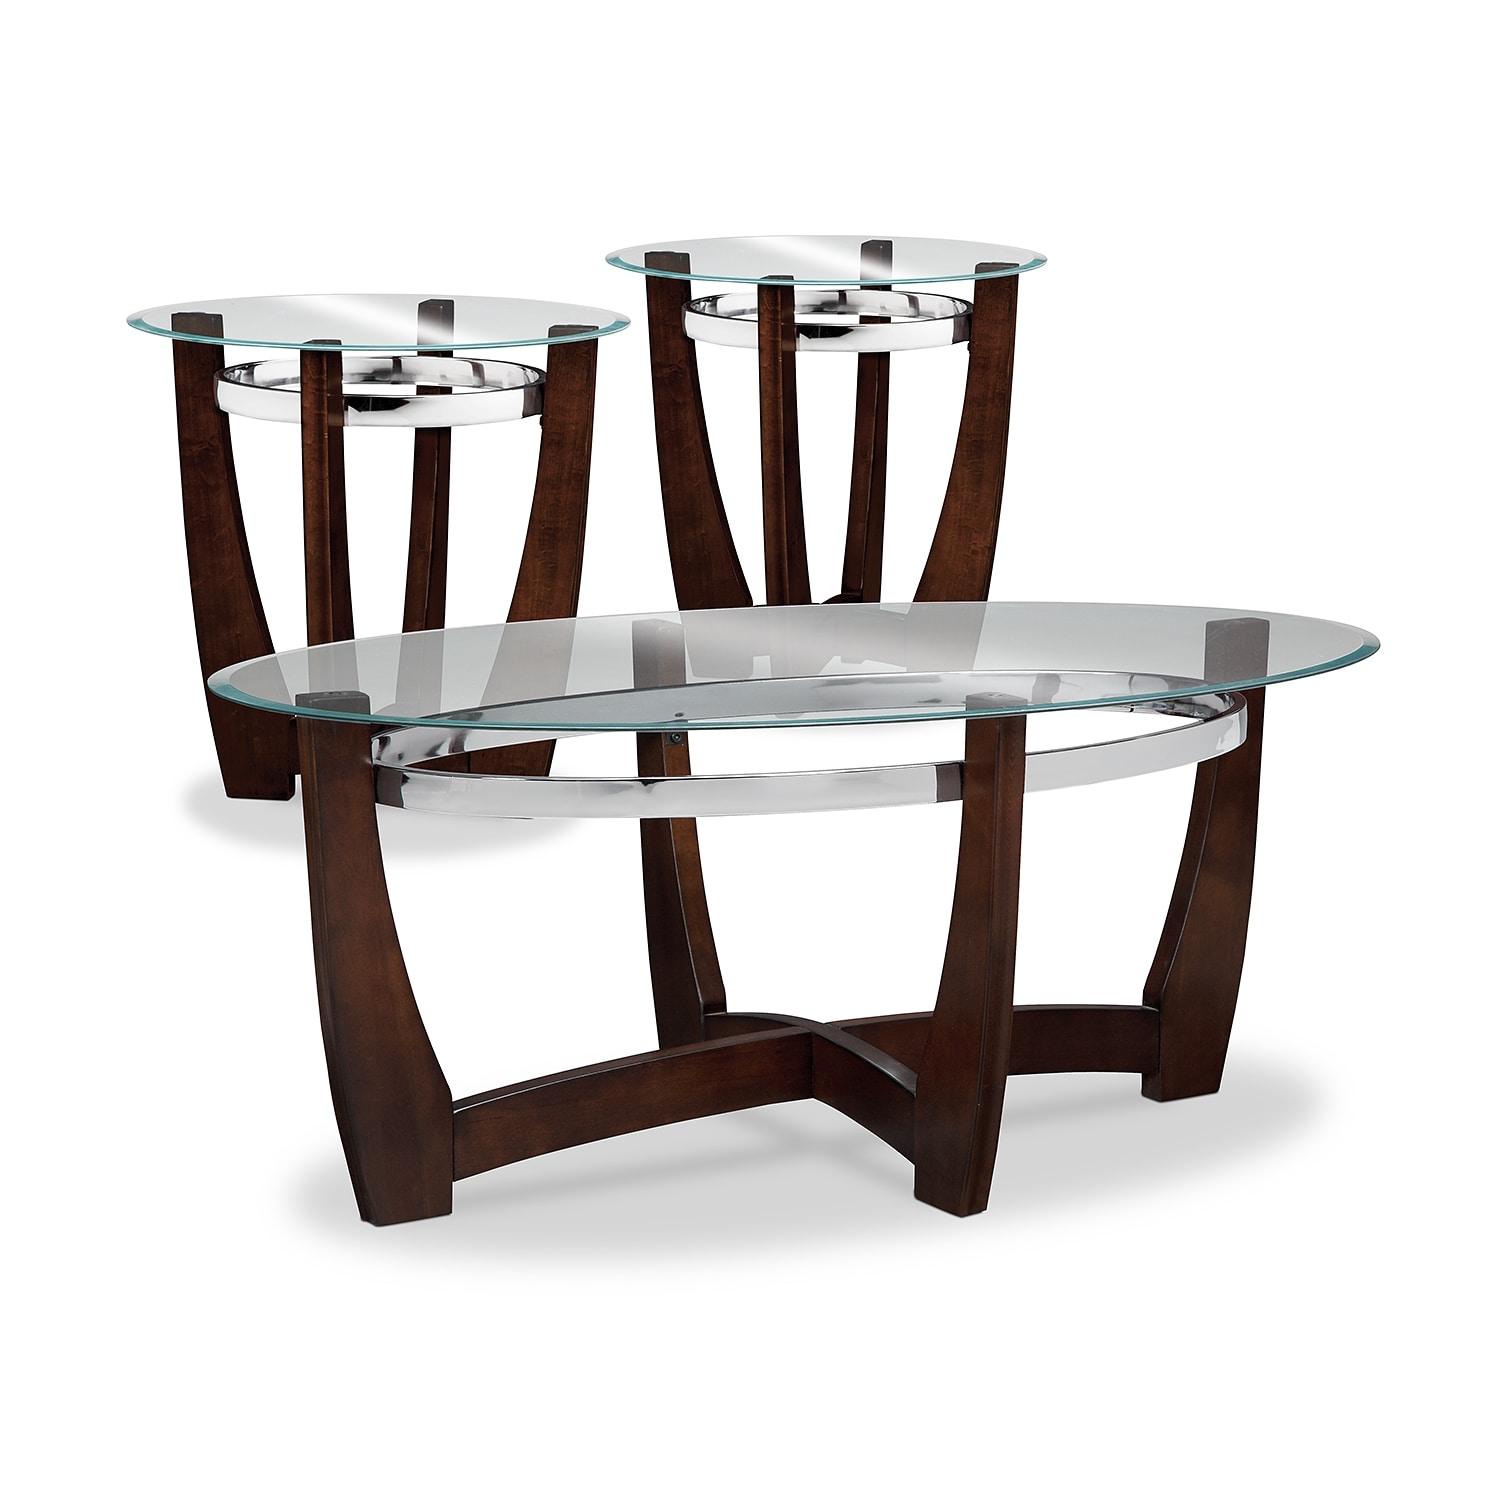 American signature furniture alcove occasional tables 3 for Living room chair and table set